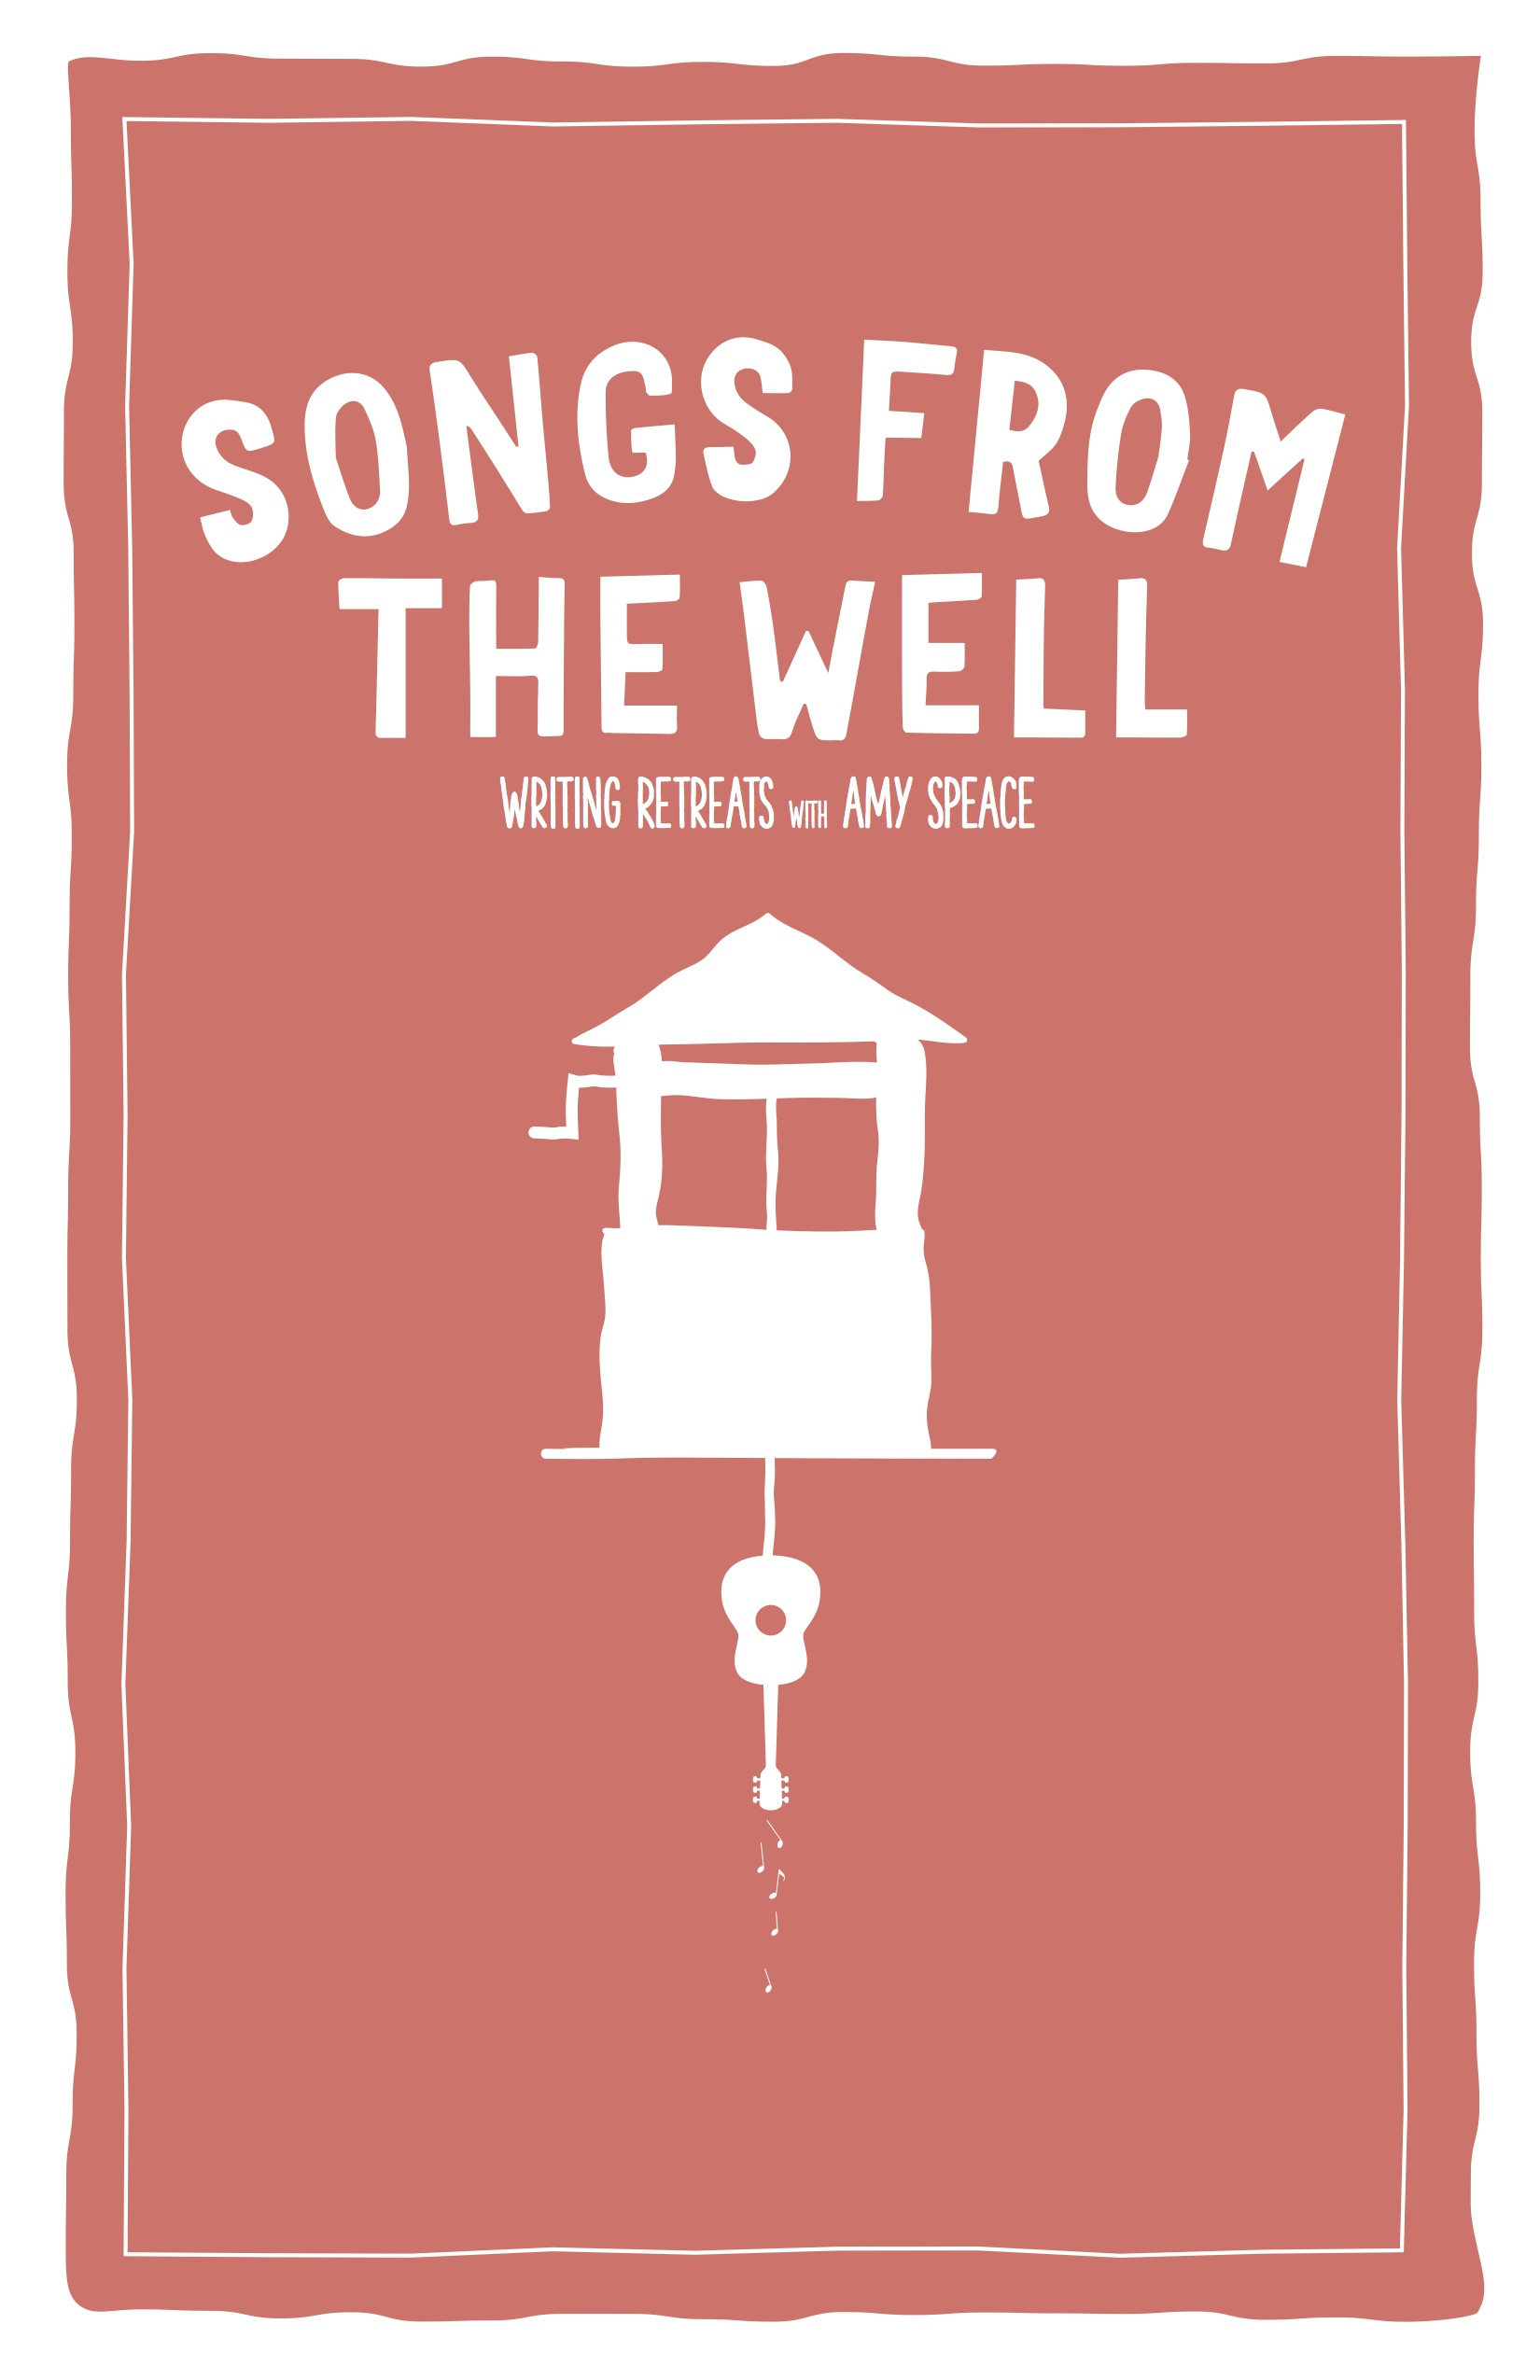 Songs From Well Pink.jpg